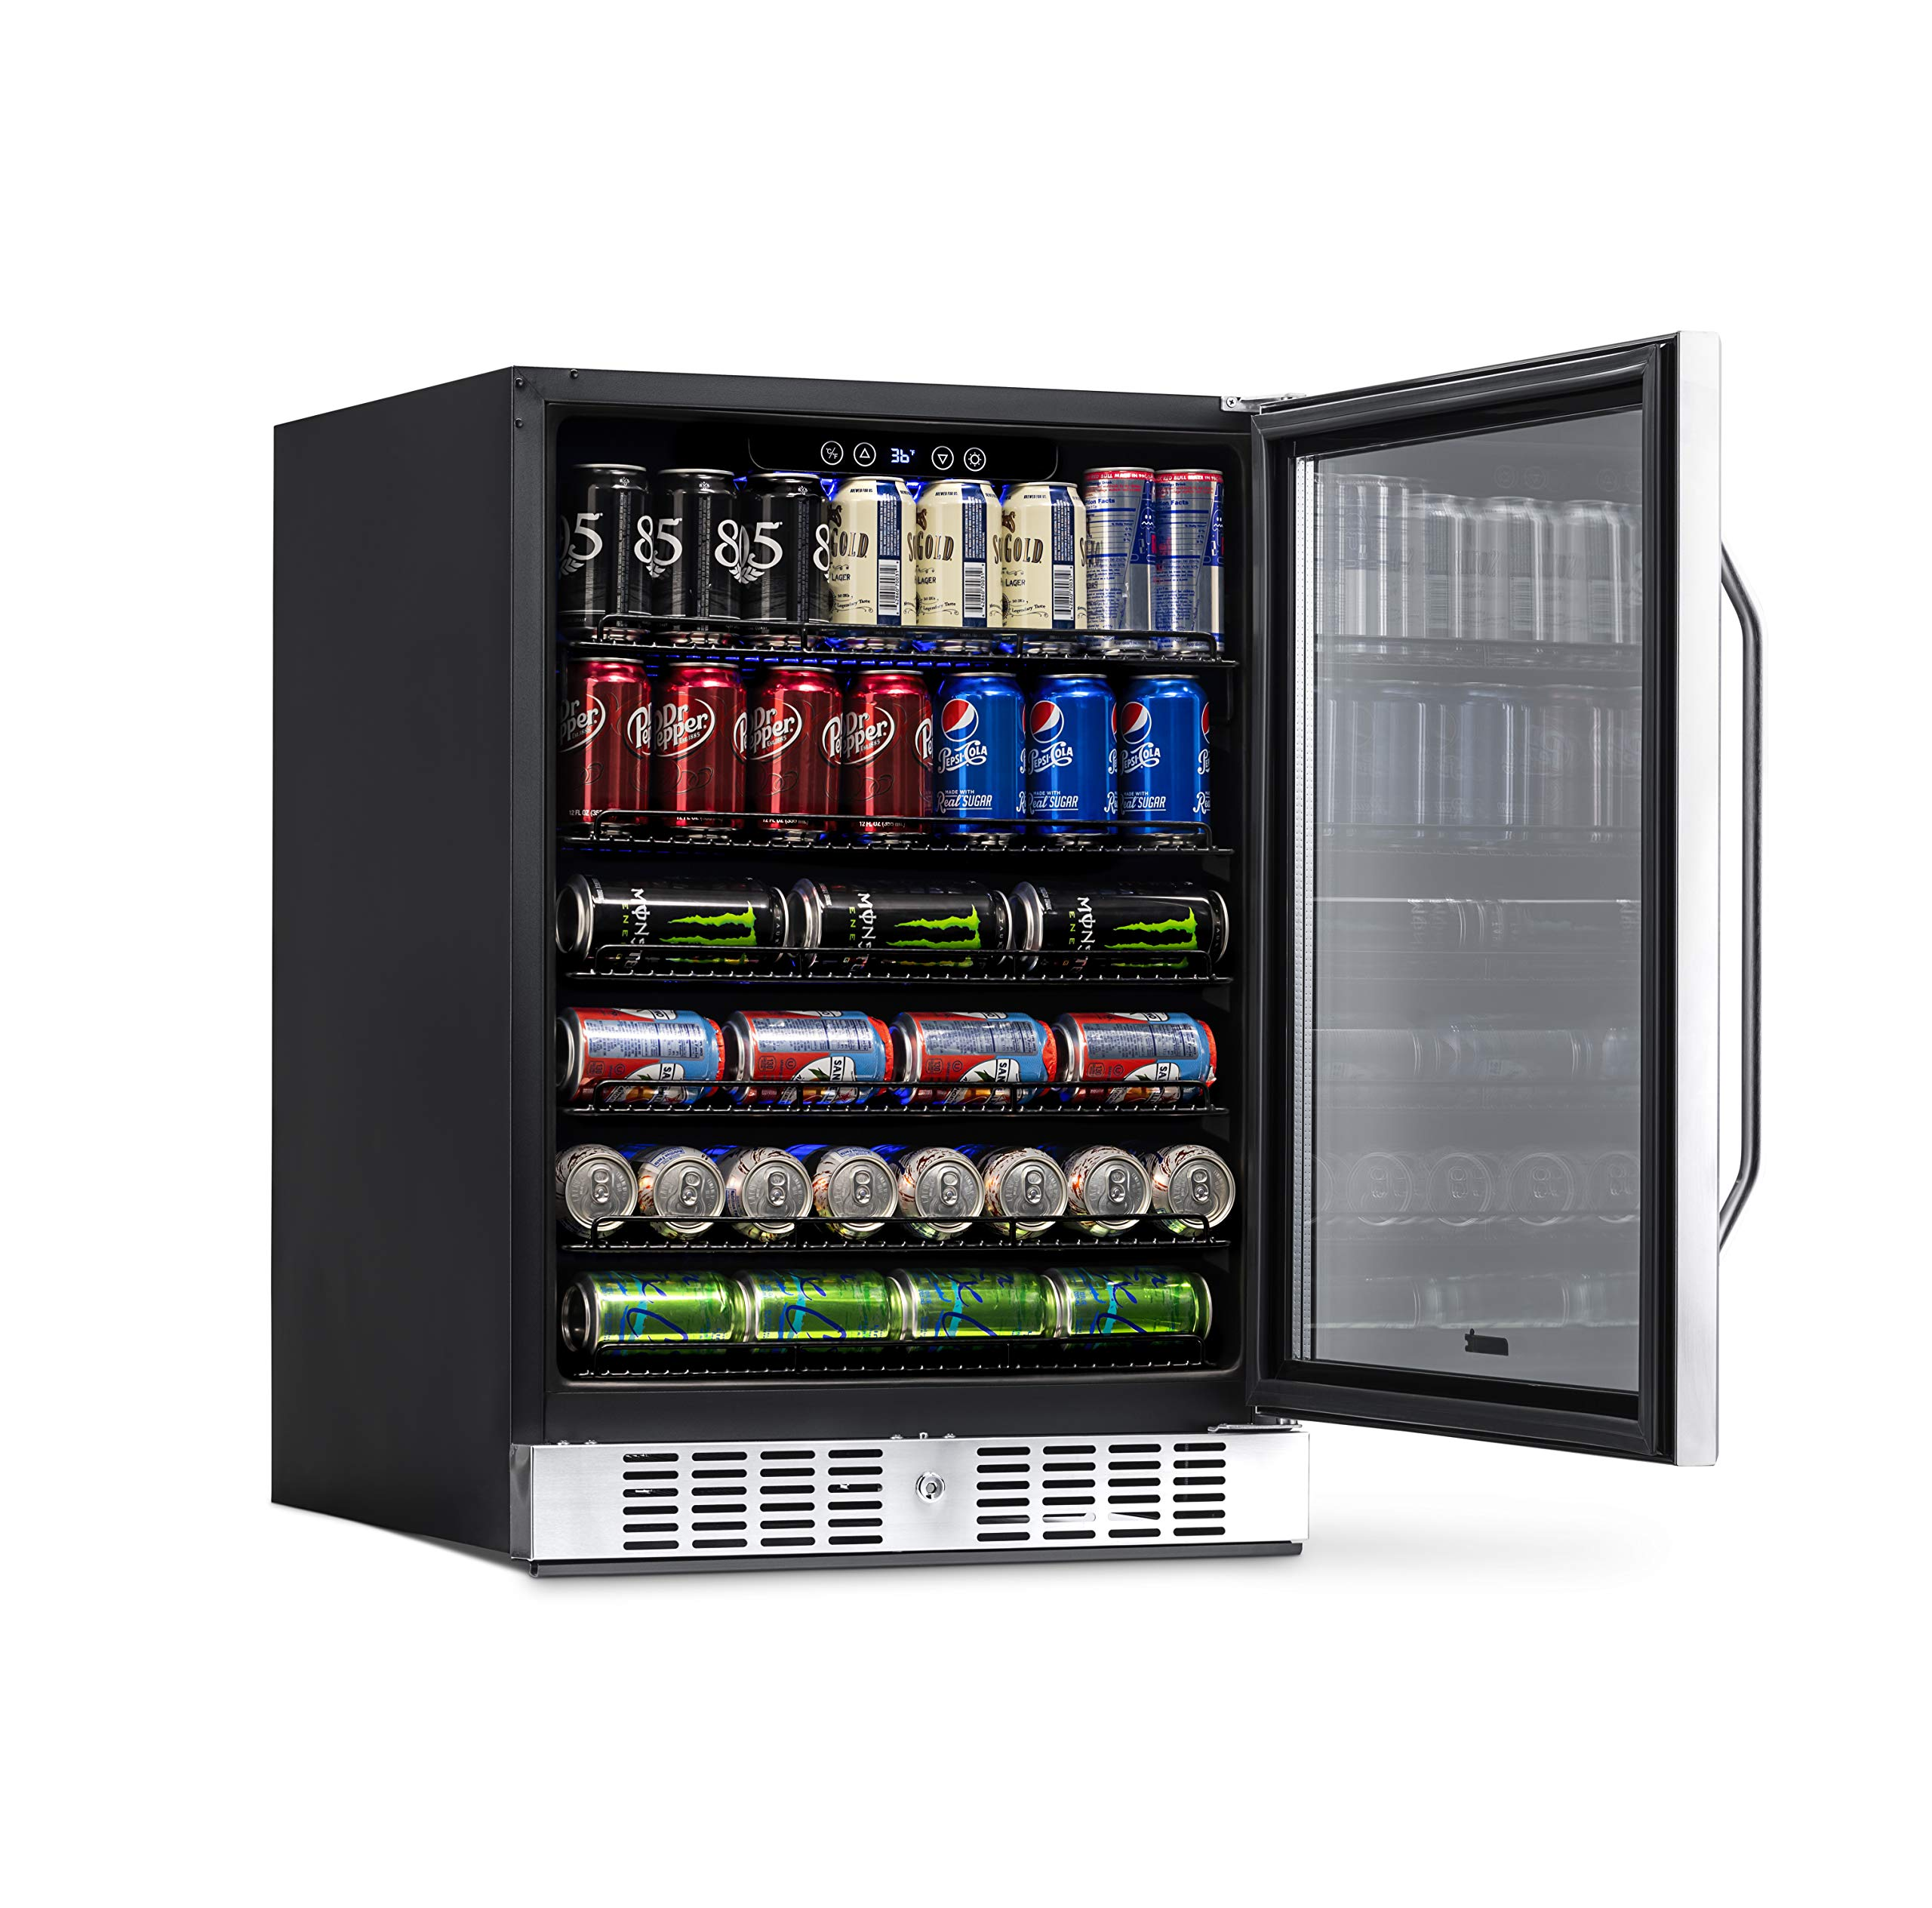 NewAir Built-In Beverage Cooler and Refrigerator, Stainless Steel Mini Fridge with Glass Door,  177 Can Capacity, ABR-1770 by NewAir (Image #9)